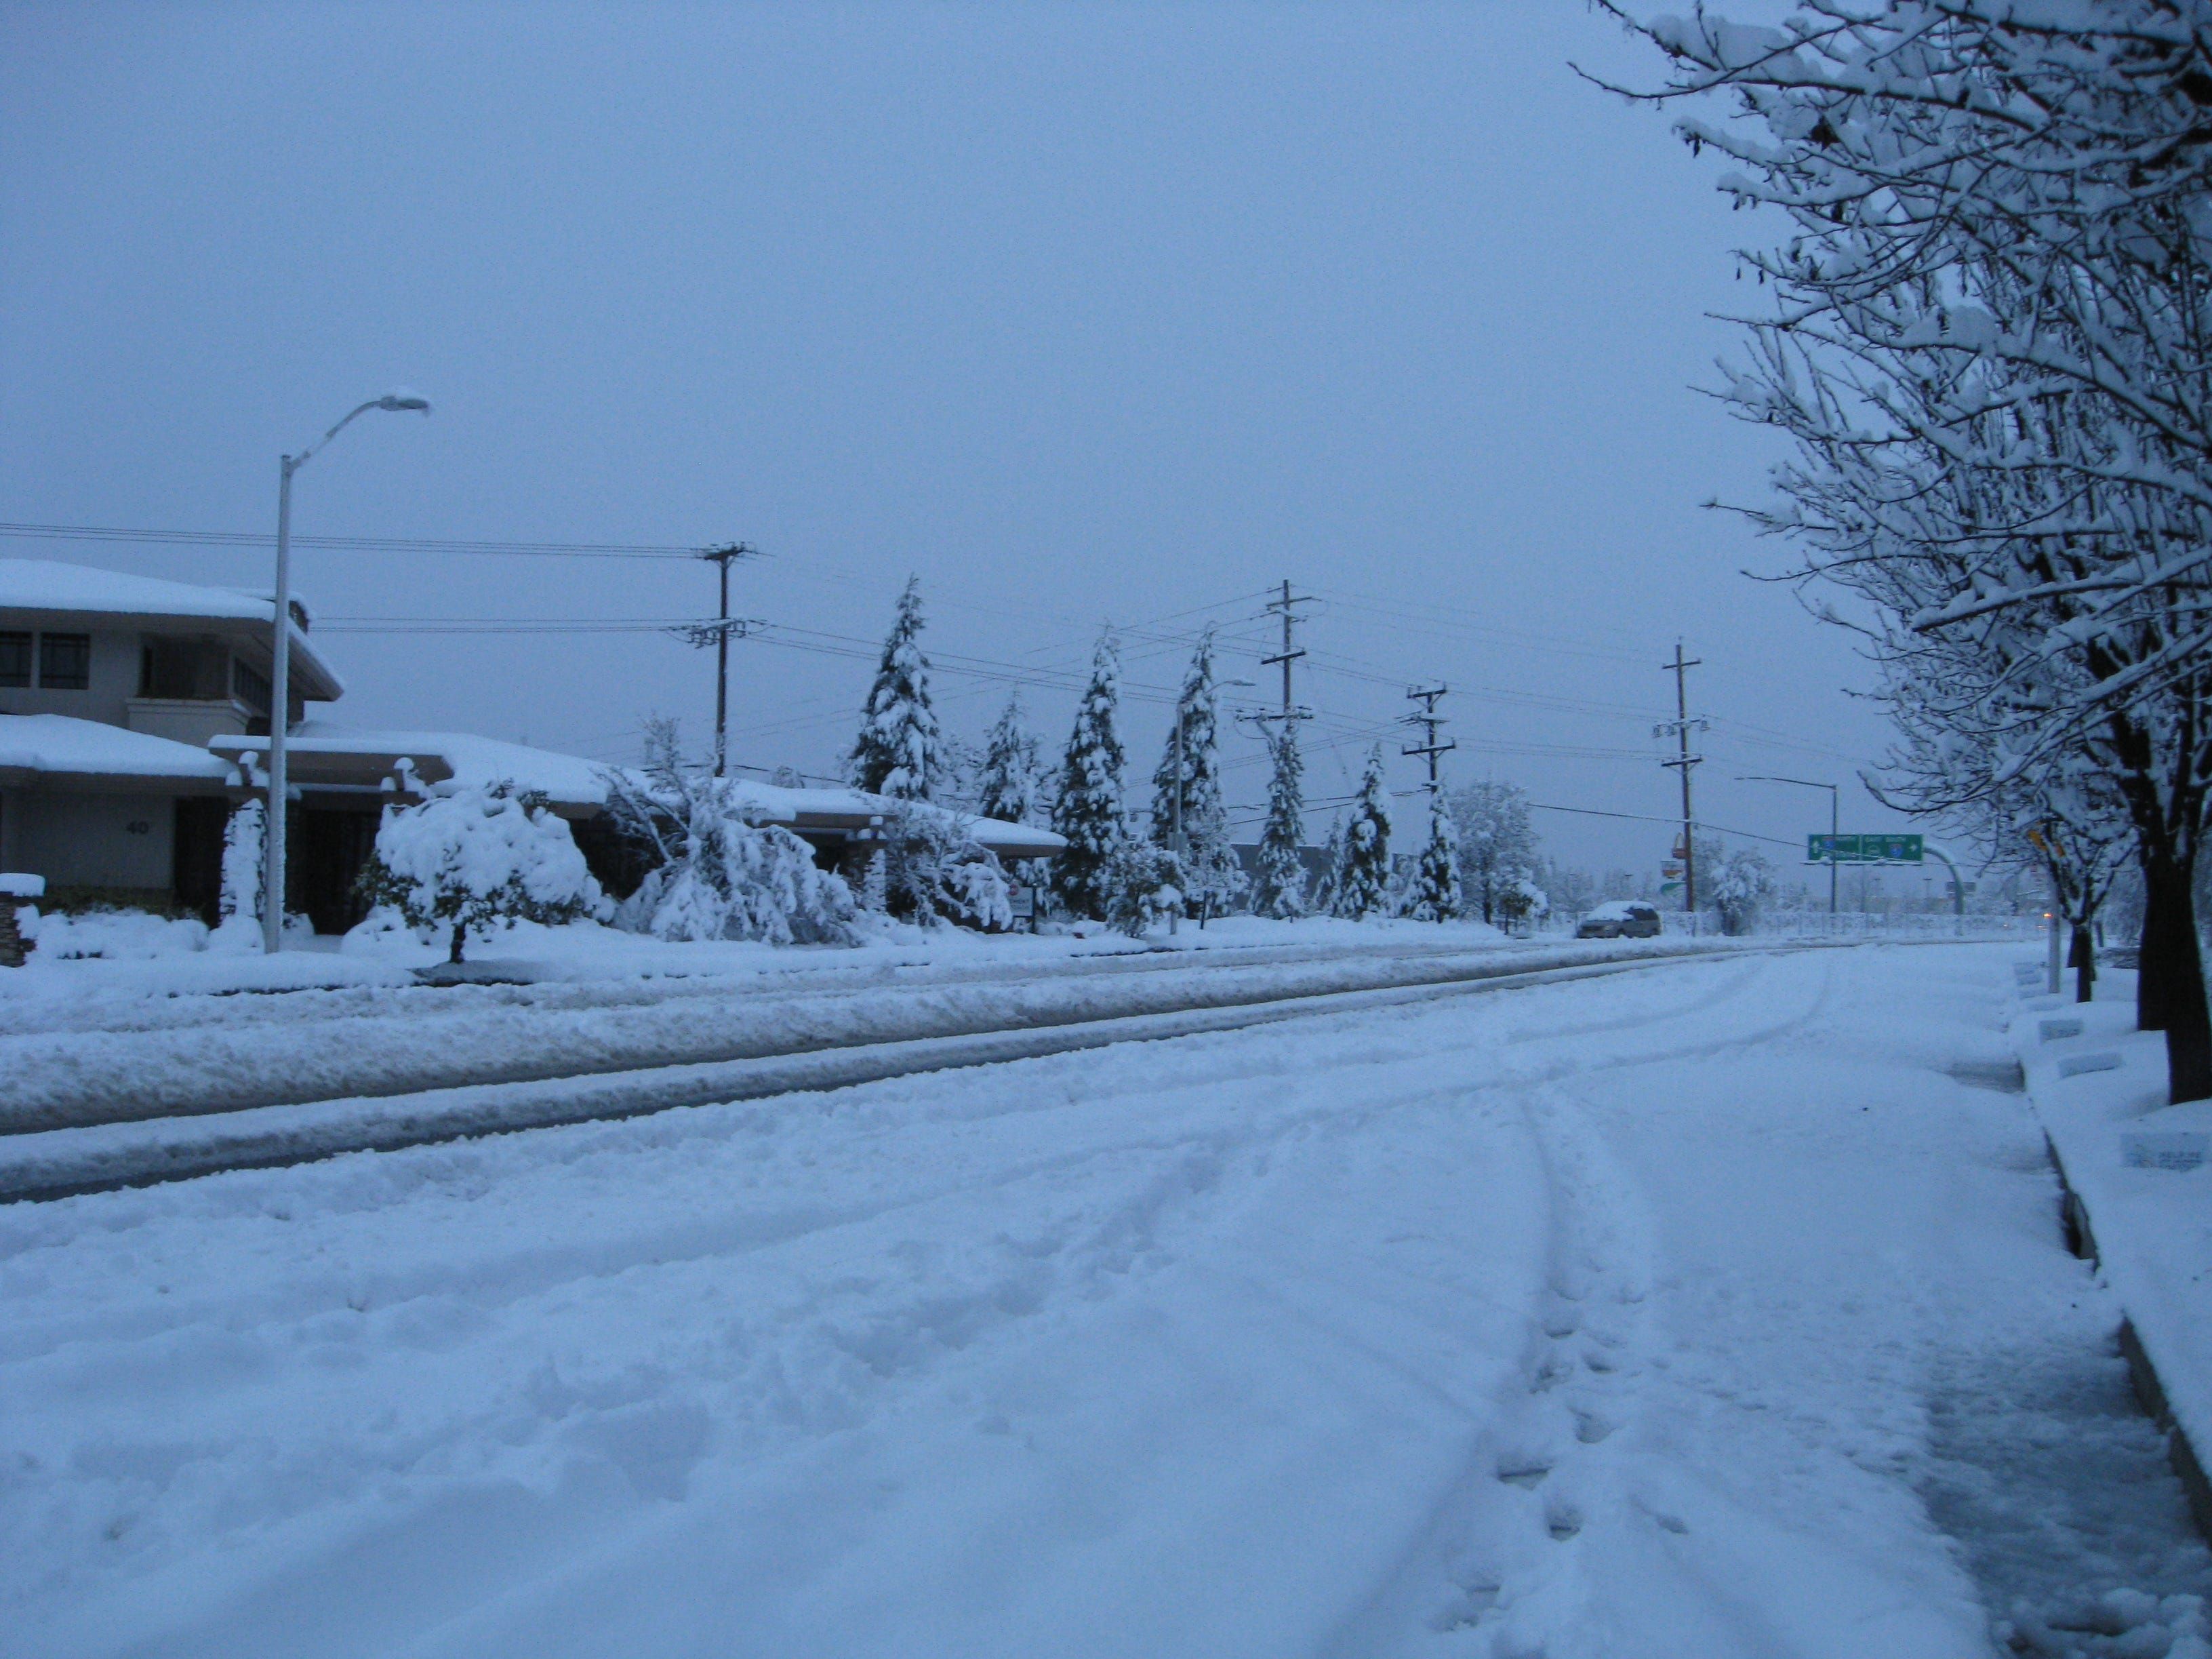 Snow brought down power and stopped traffic on Hilltop Drive Wednesday morning